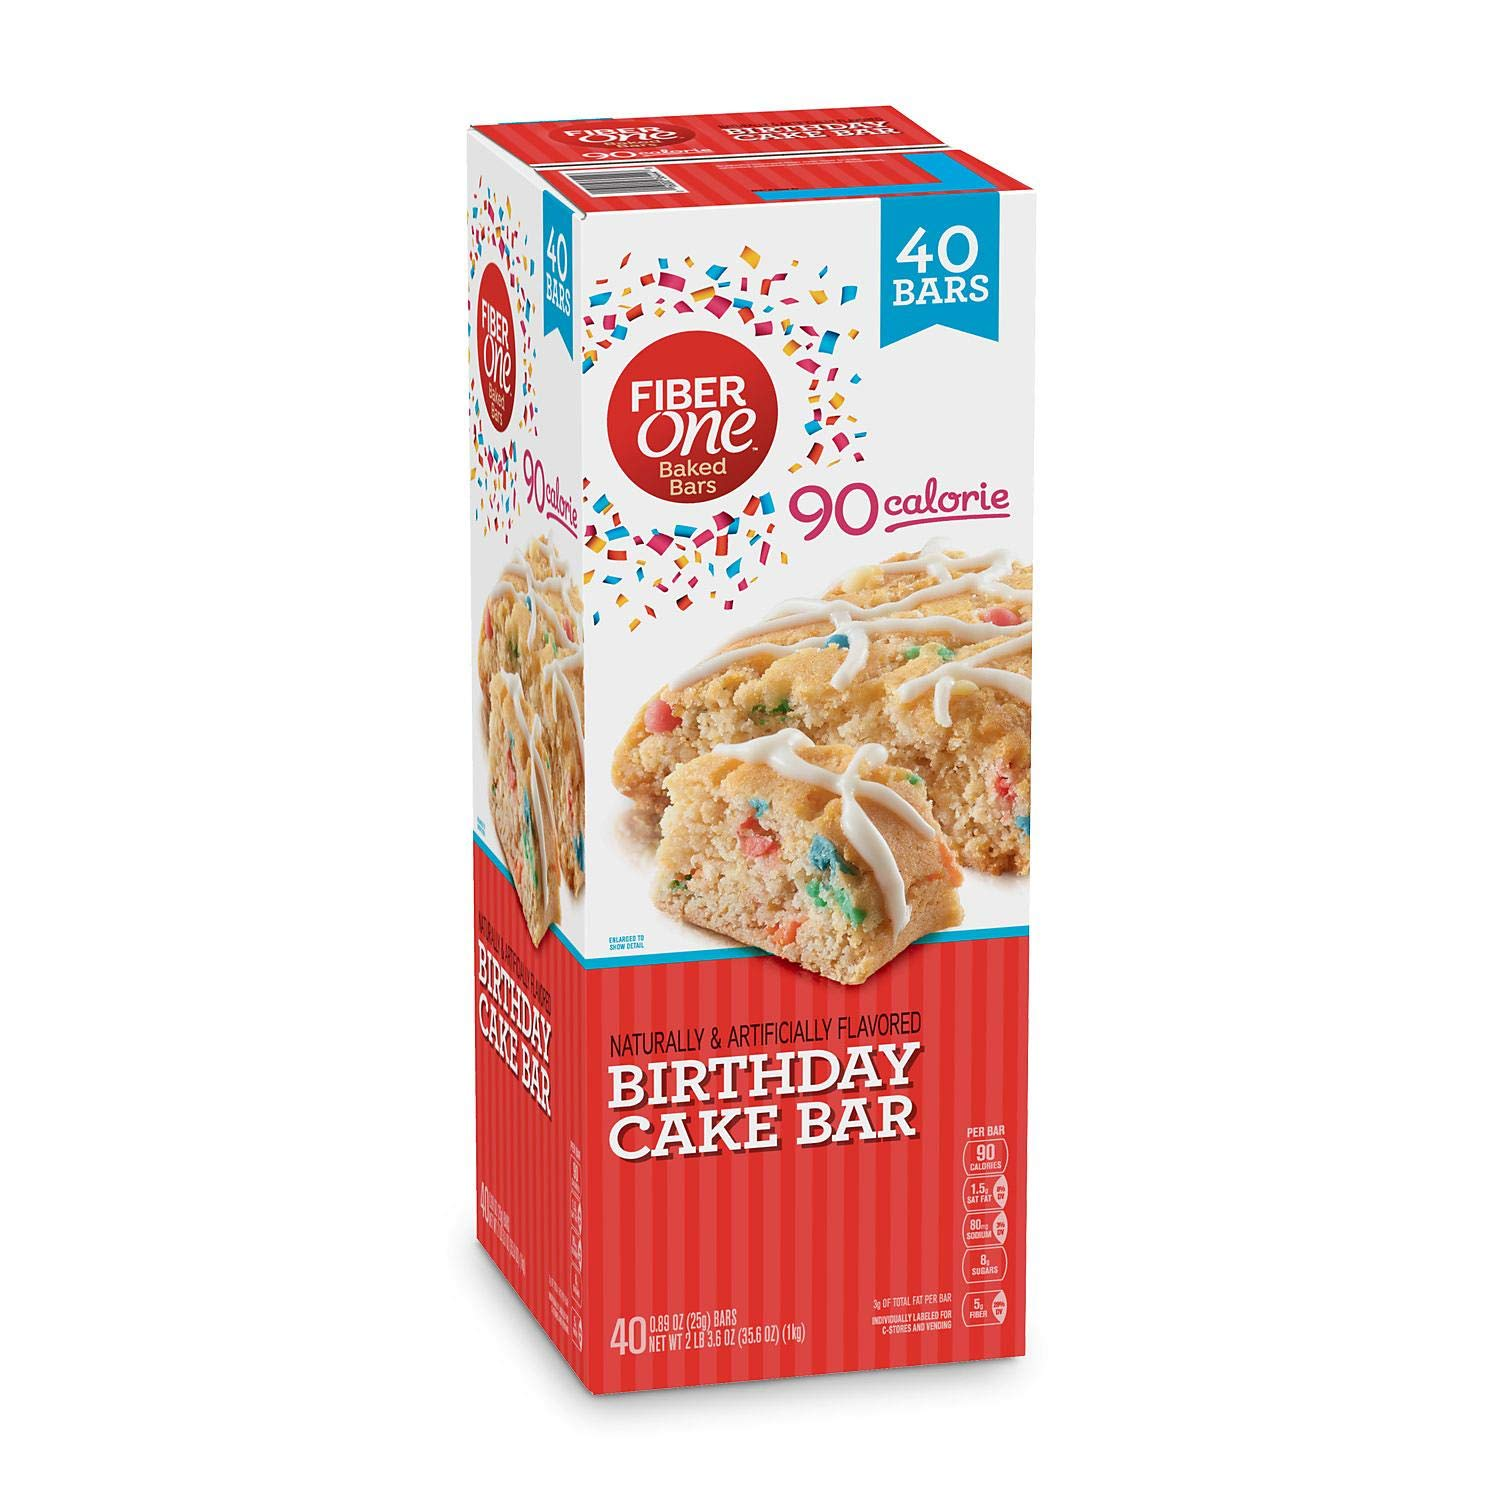 Fiber One 90 Calorie Birthday Cake Bar ~ 40 Count by Fiber One